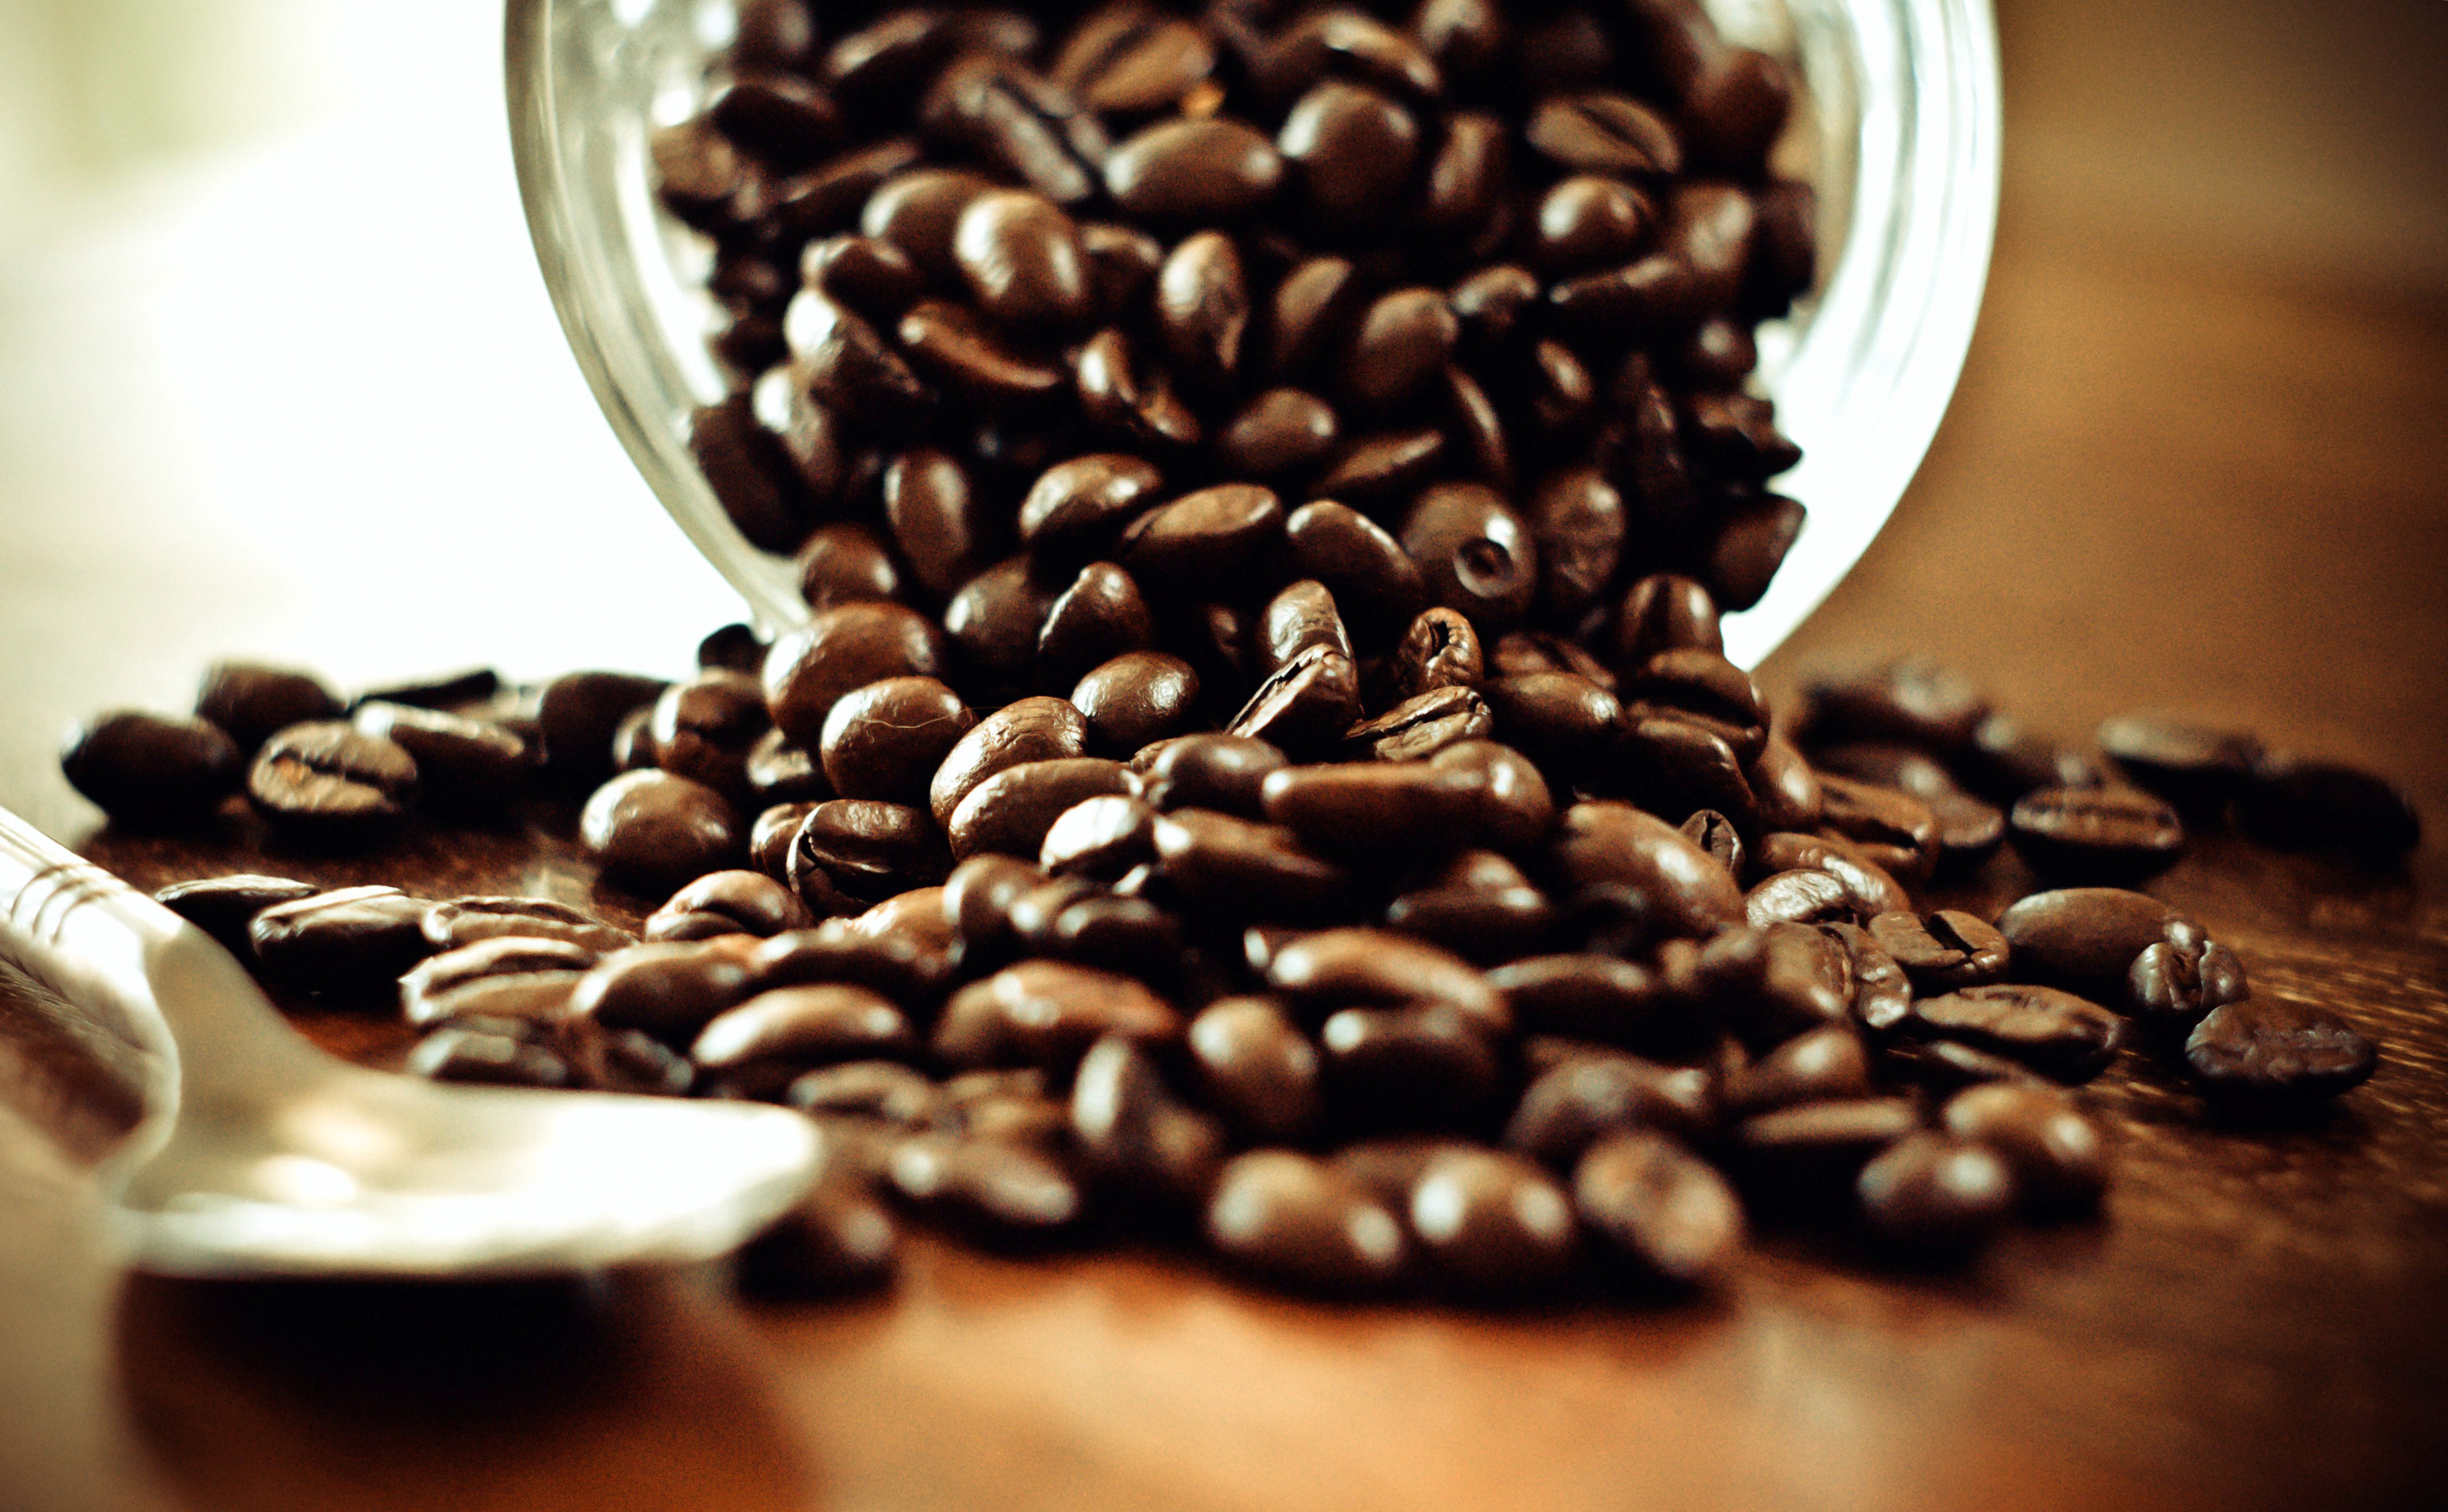 Coffee Cute Wallpapers Coffee Beans And Spoon Wallpapers Hd Desktop And Mobile